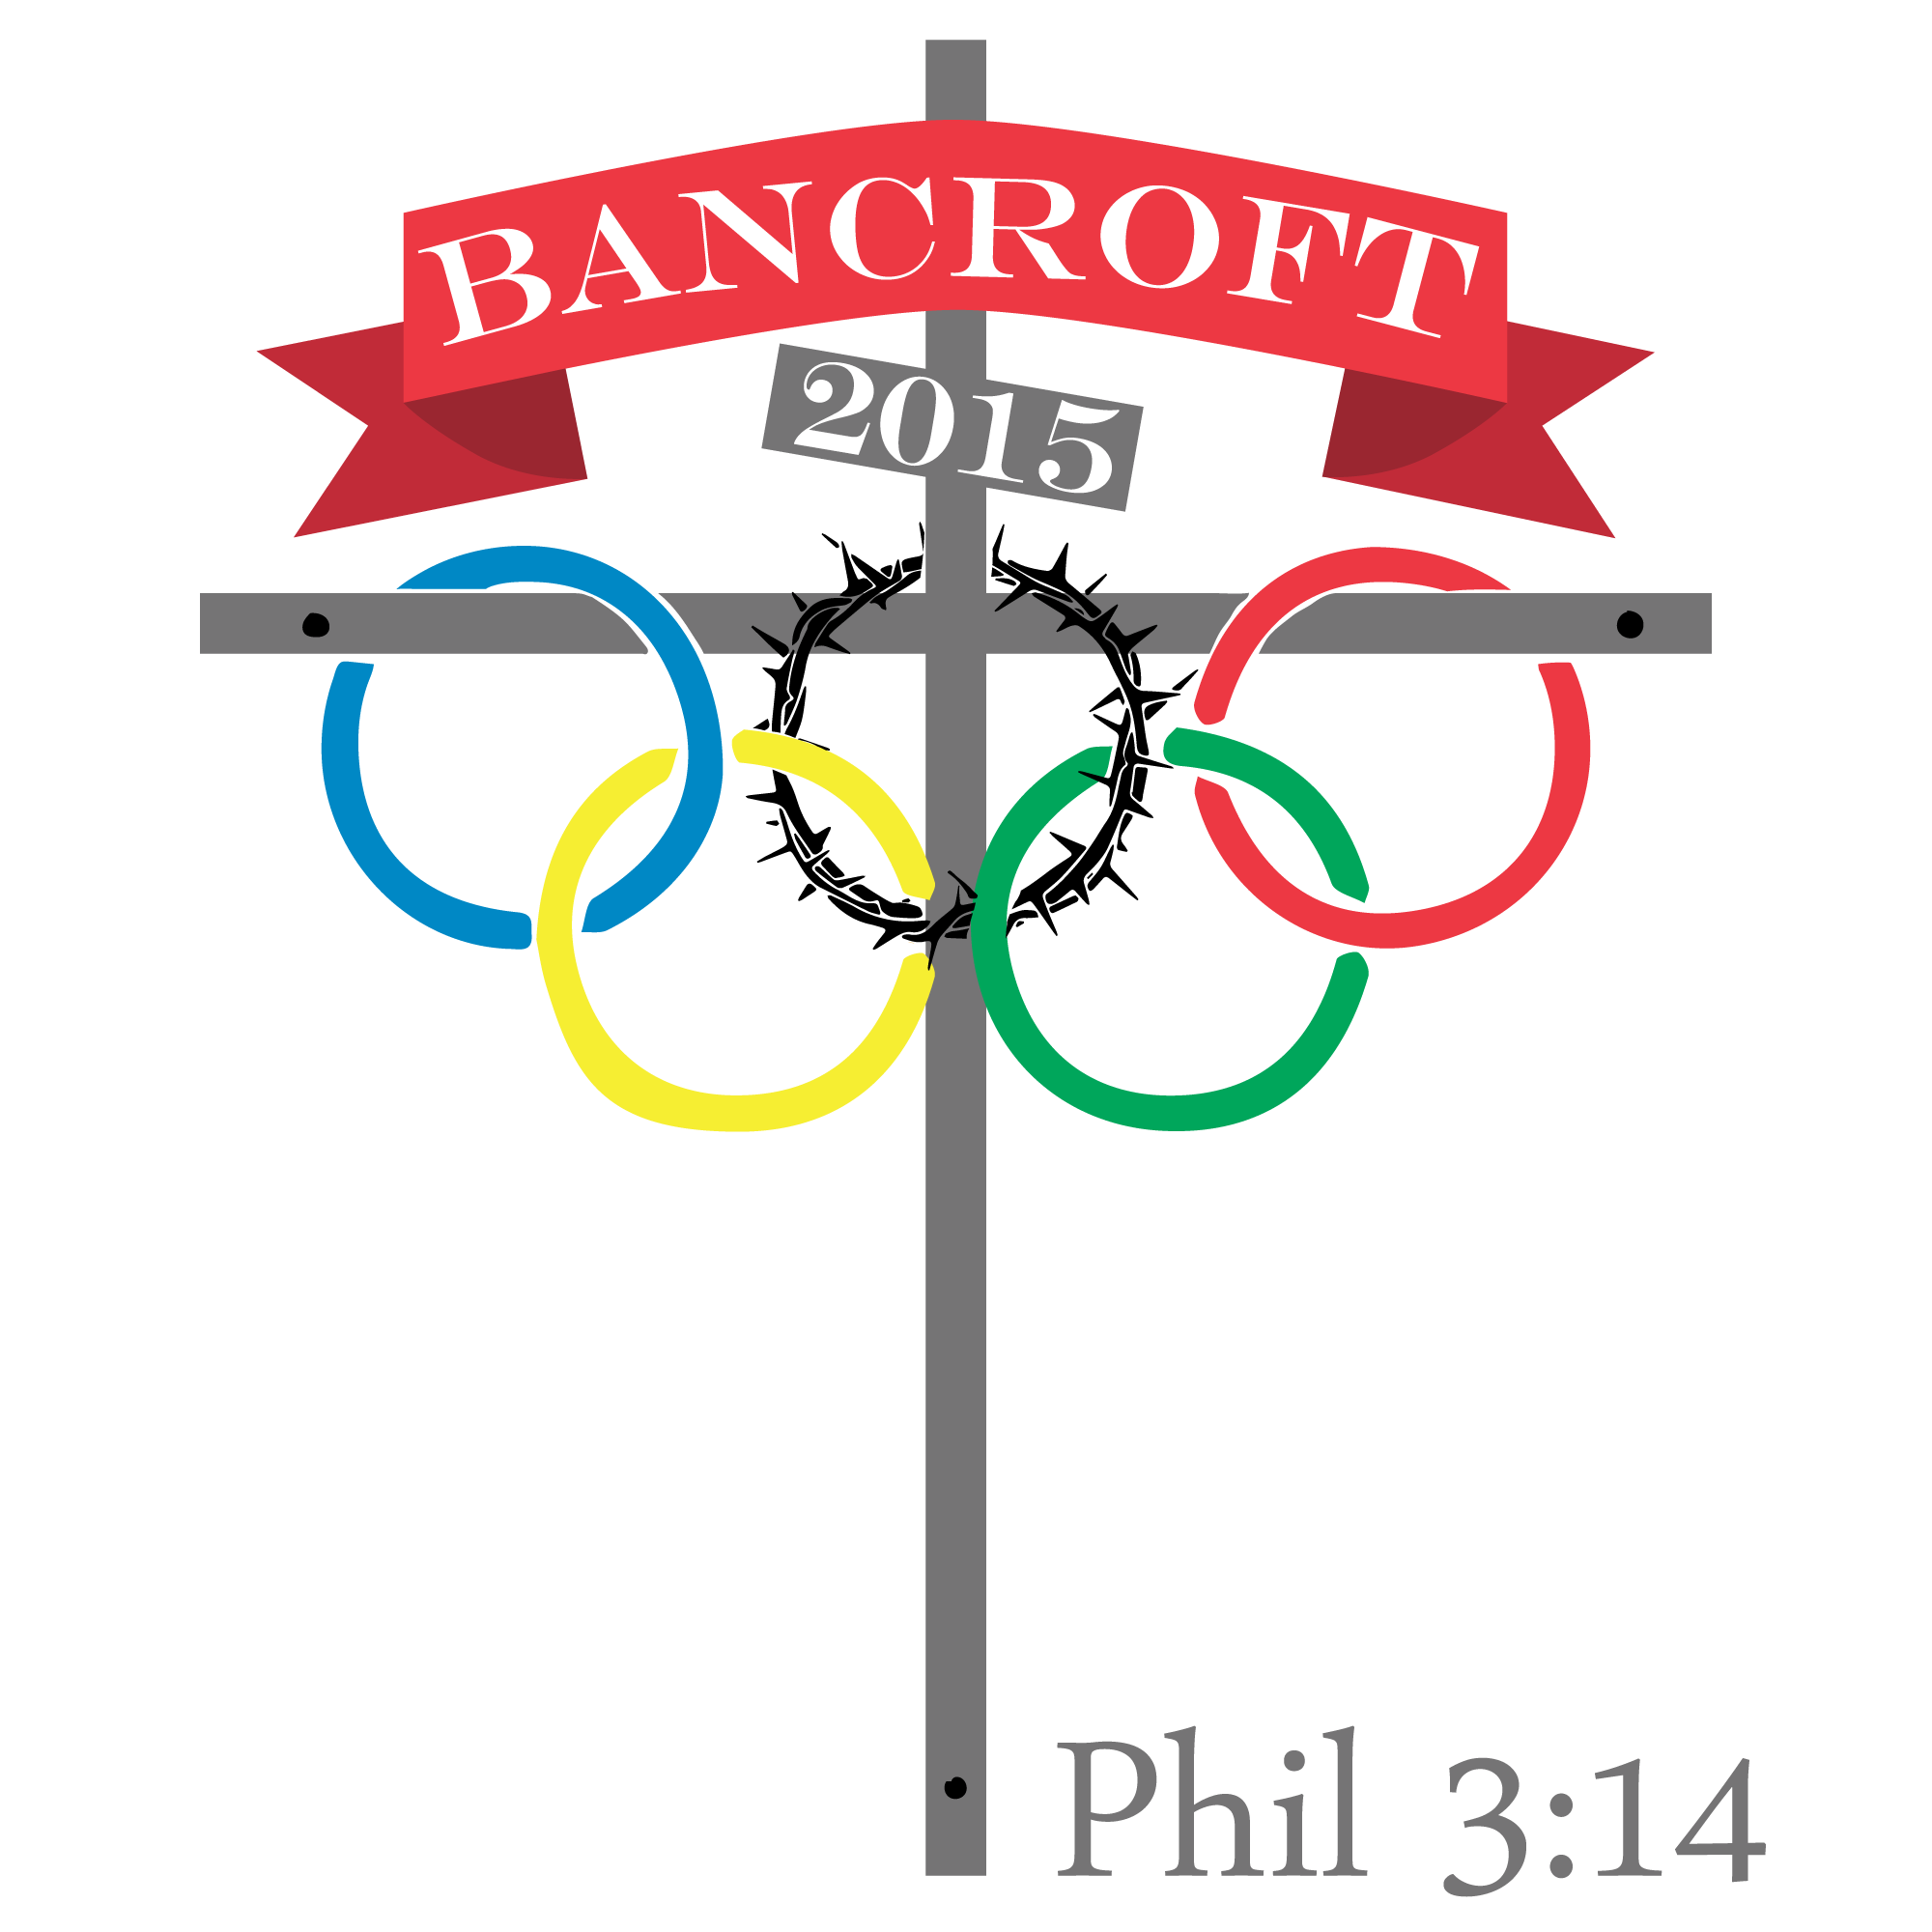 Missions clipart church officer. Olympics bancroft of god